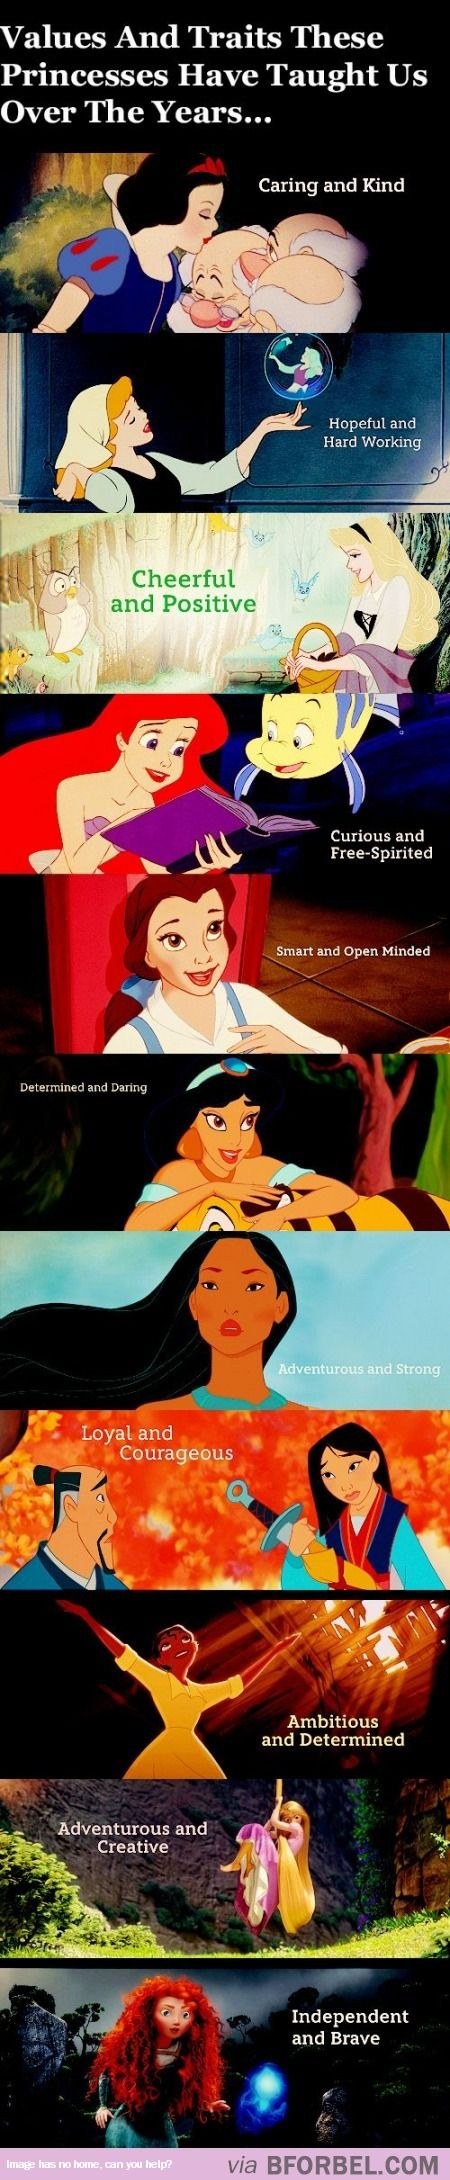 11 Values And Traits Disney Princesses Taught Us Over The Years… for my princess